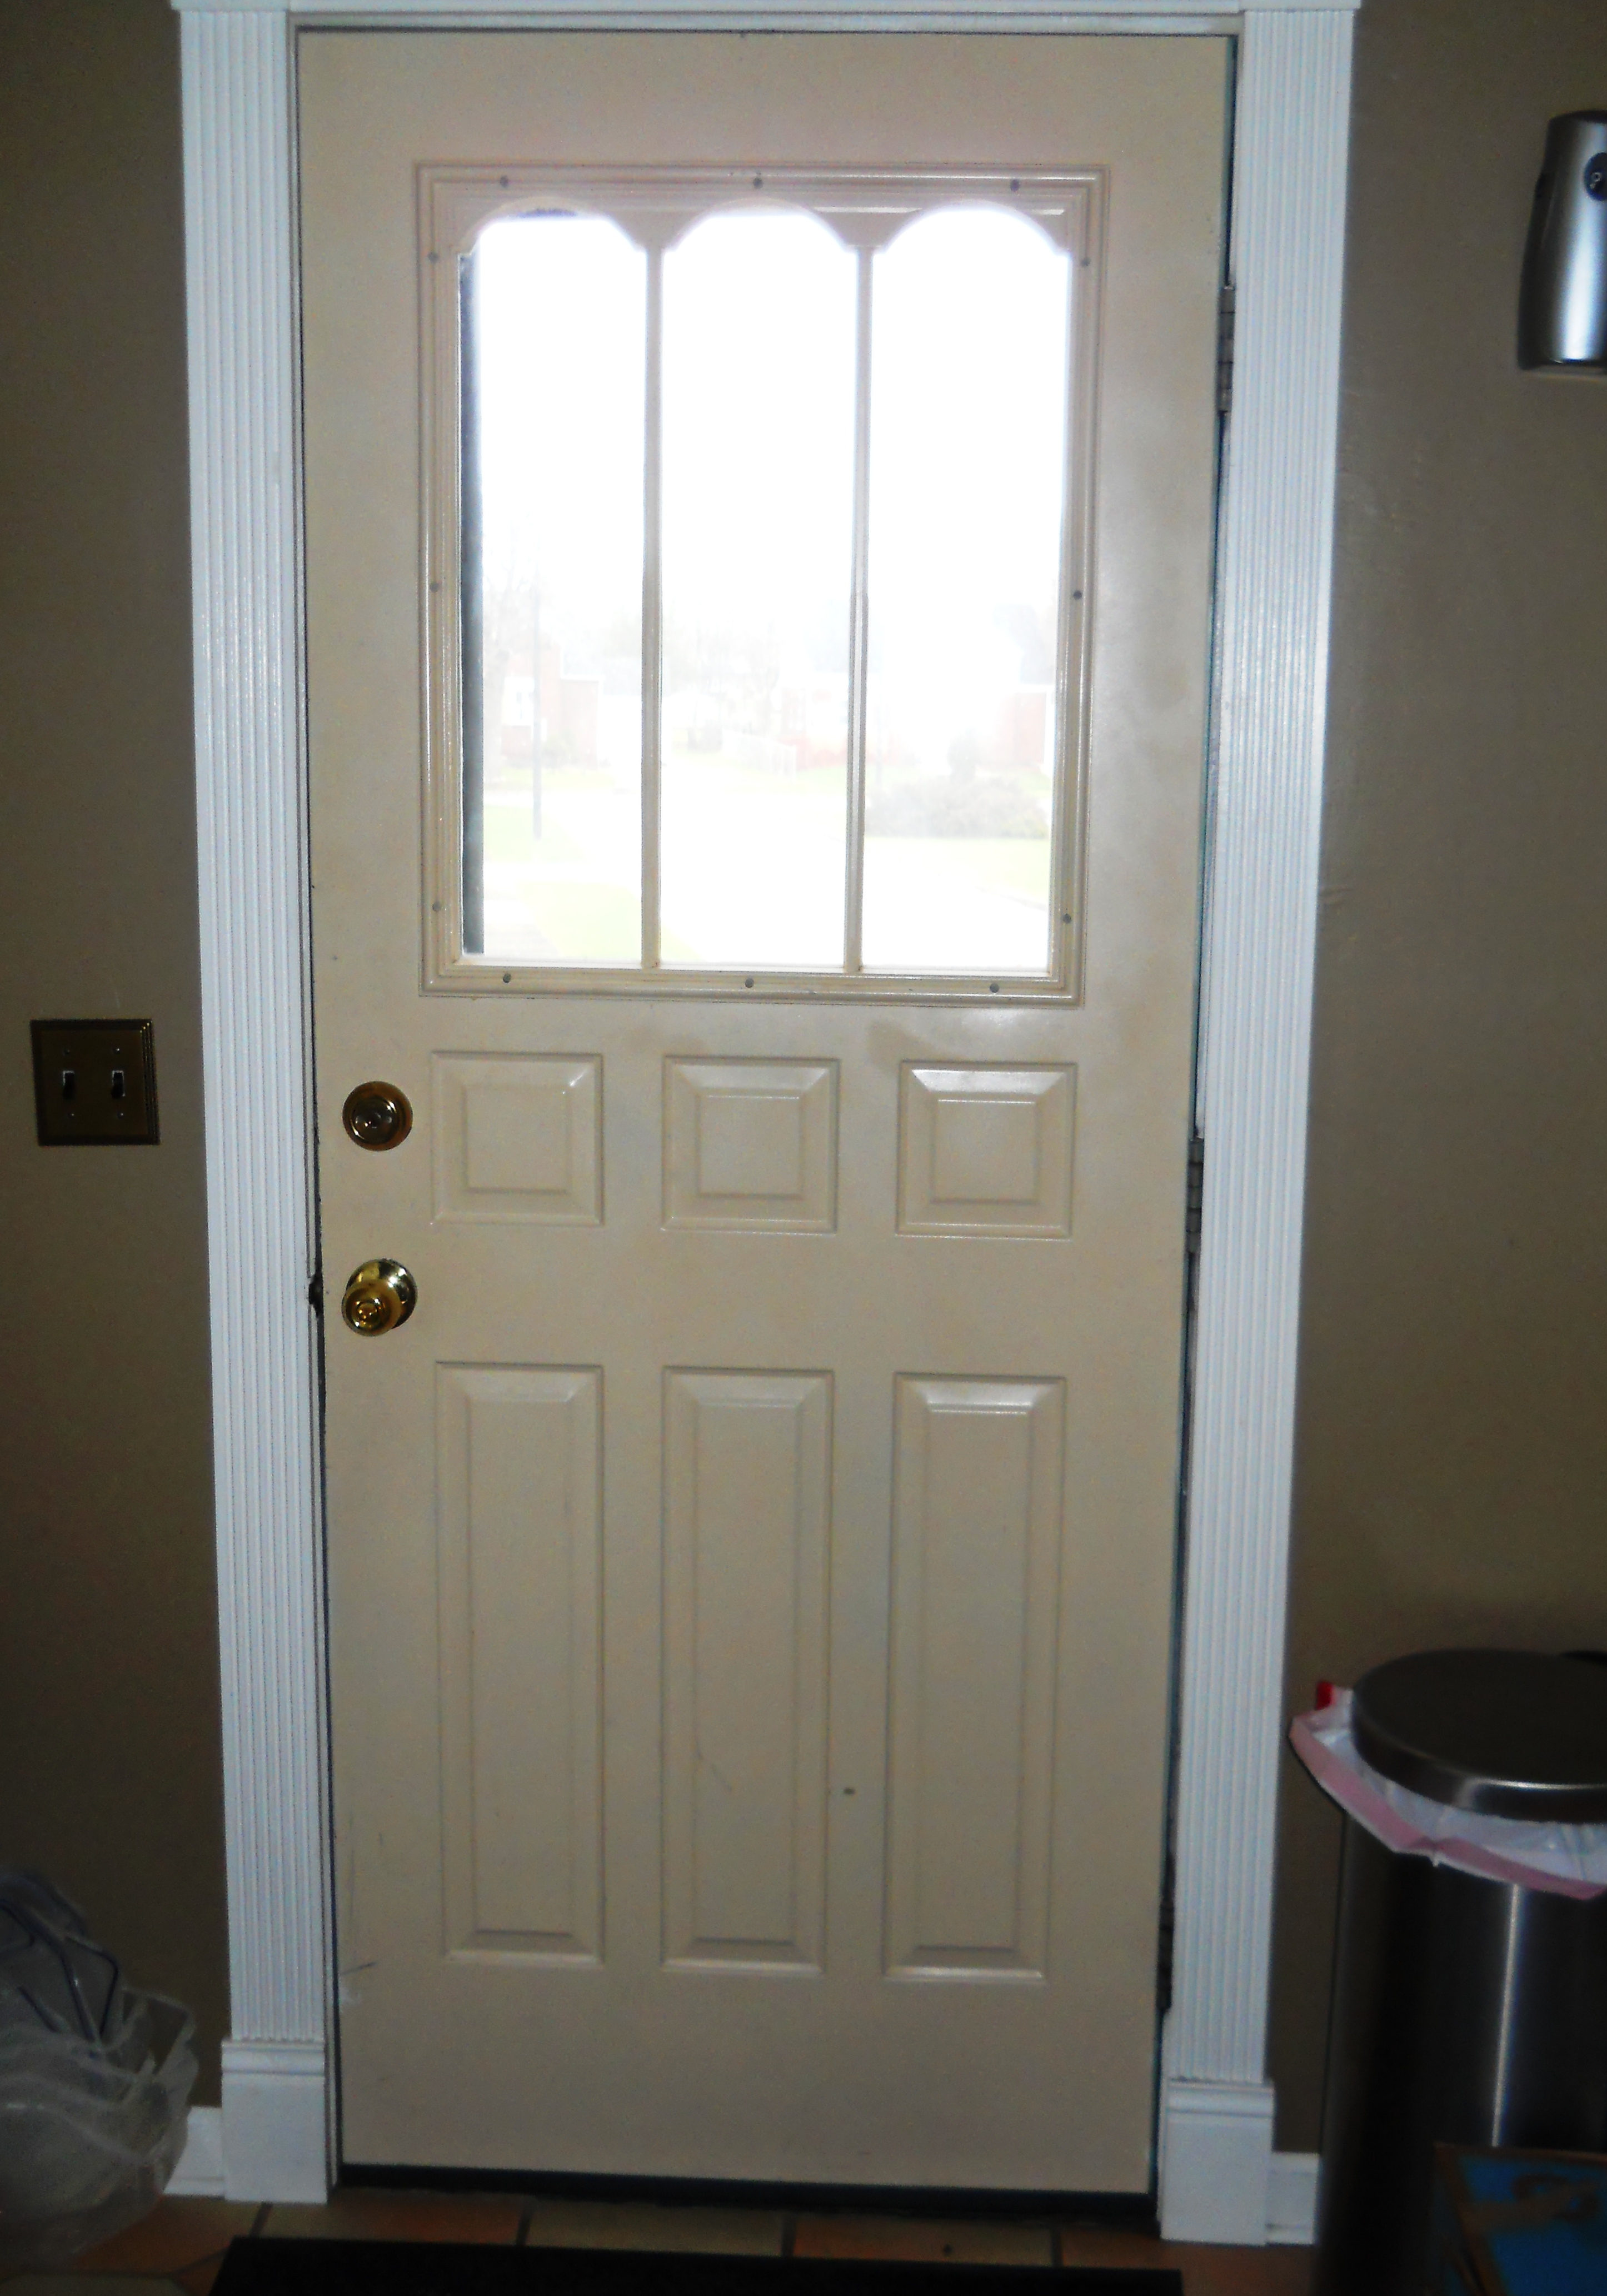 Replacement interior home entry doors in wny ivy lea construction for Interior doors installation services